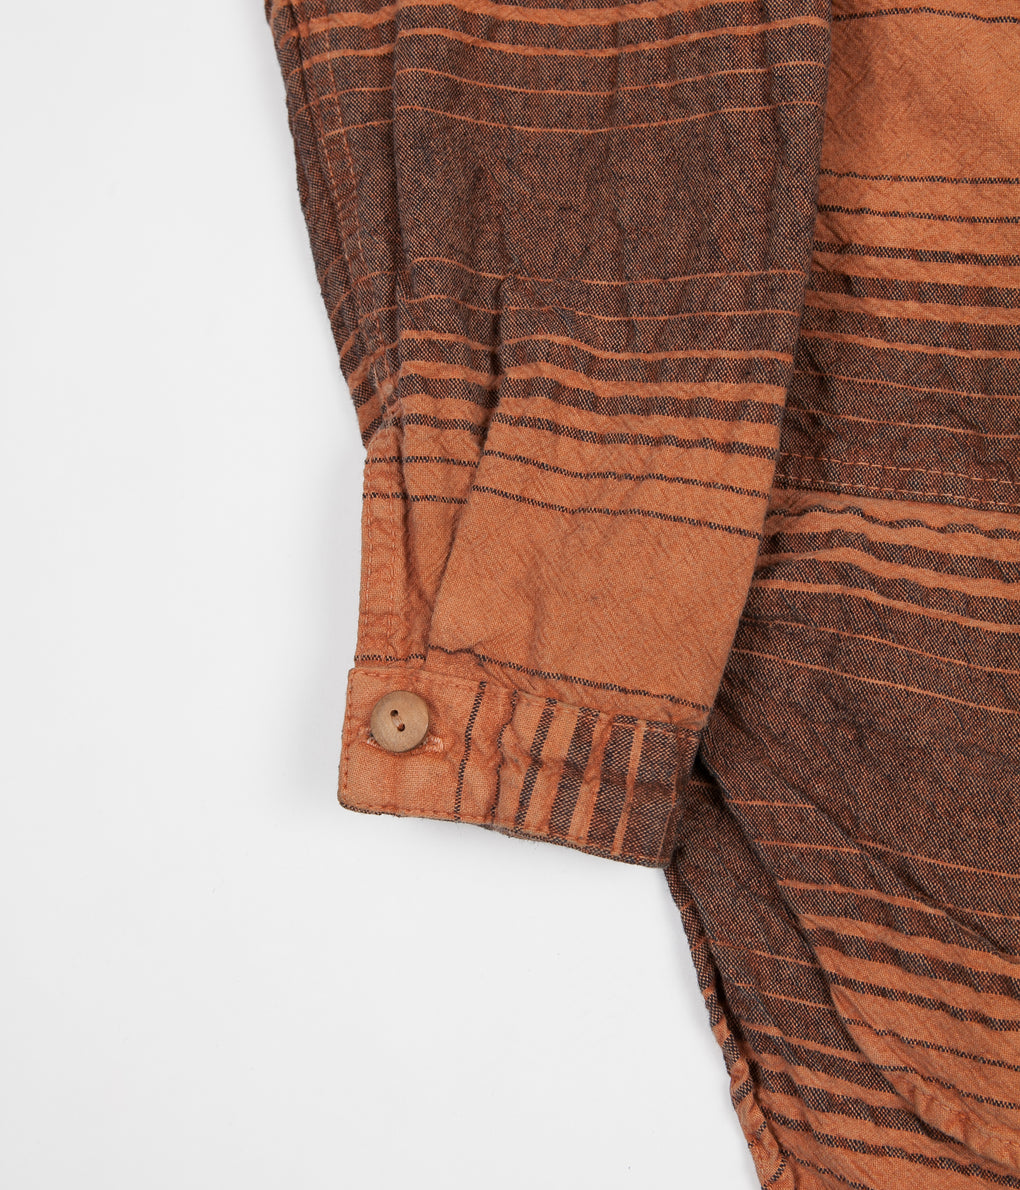 Tender Type 427 Periscope Pocket Tail Shirt - Indigo Doppler Stripe Calico Red Ochre Dye